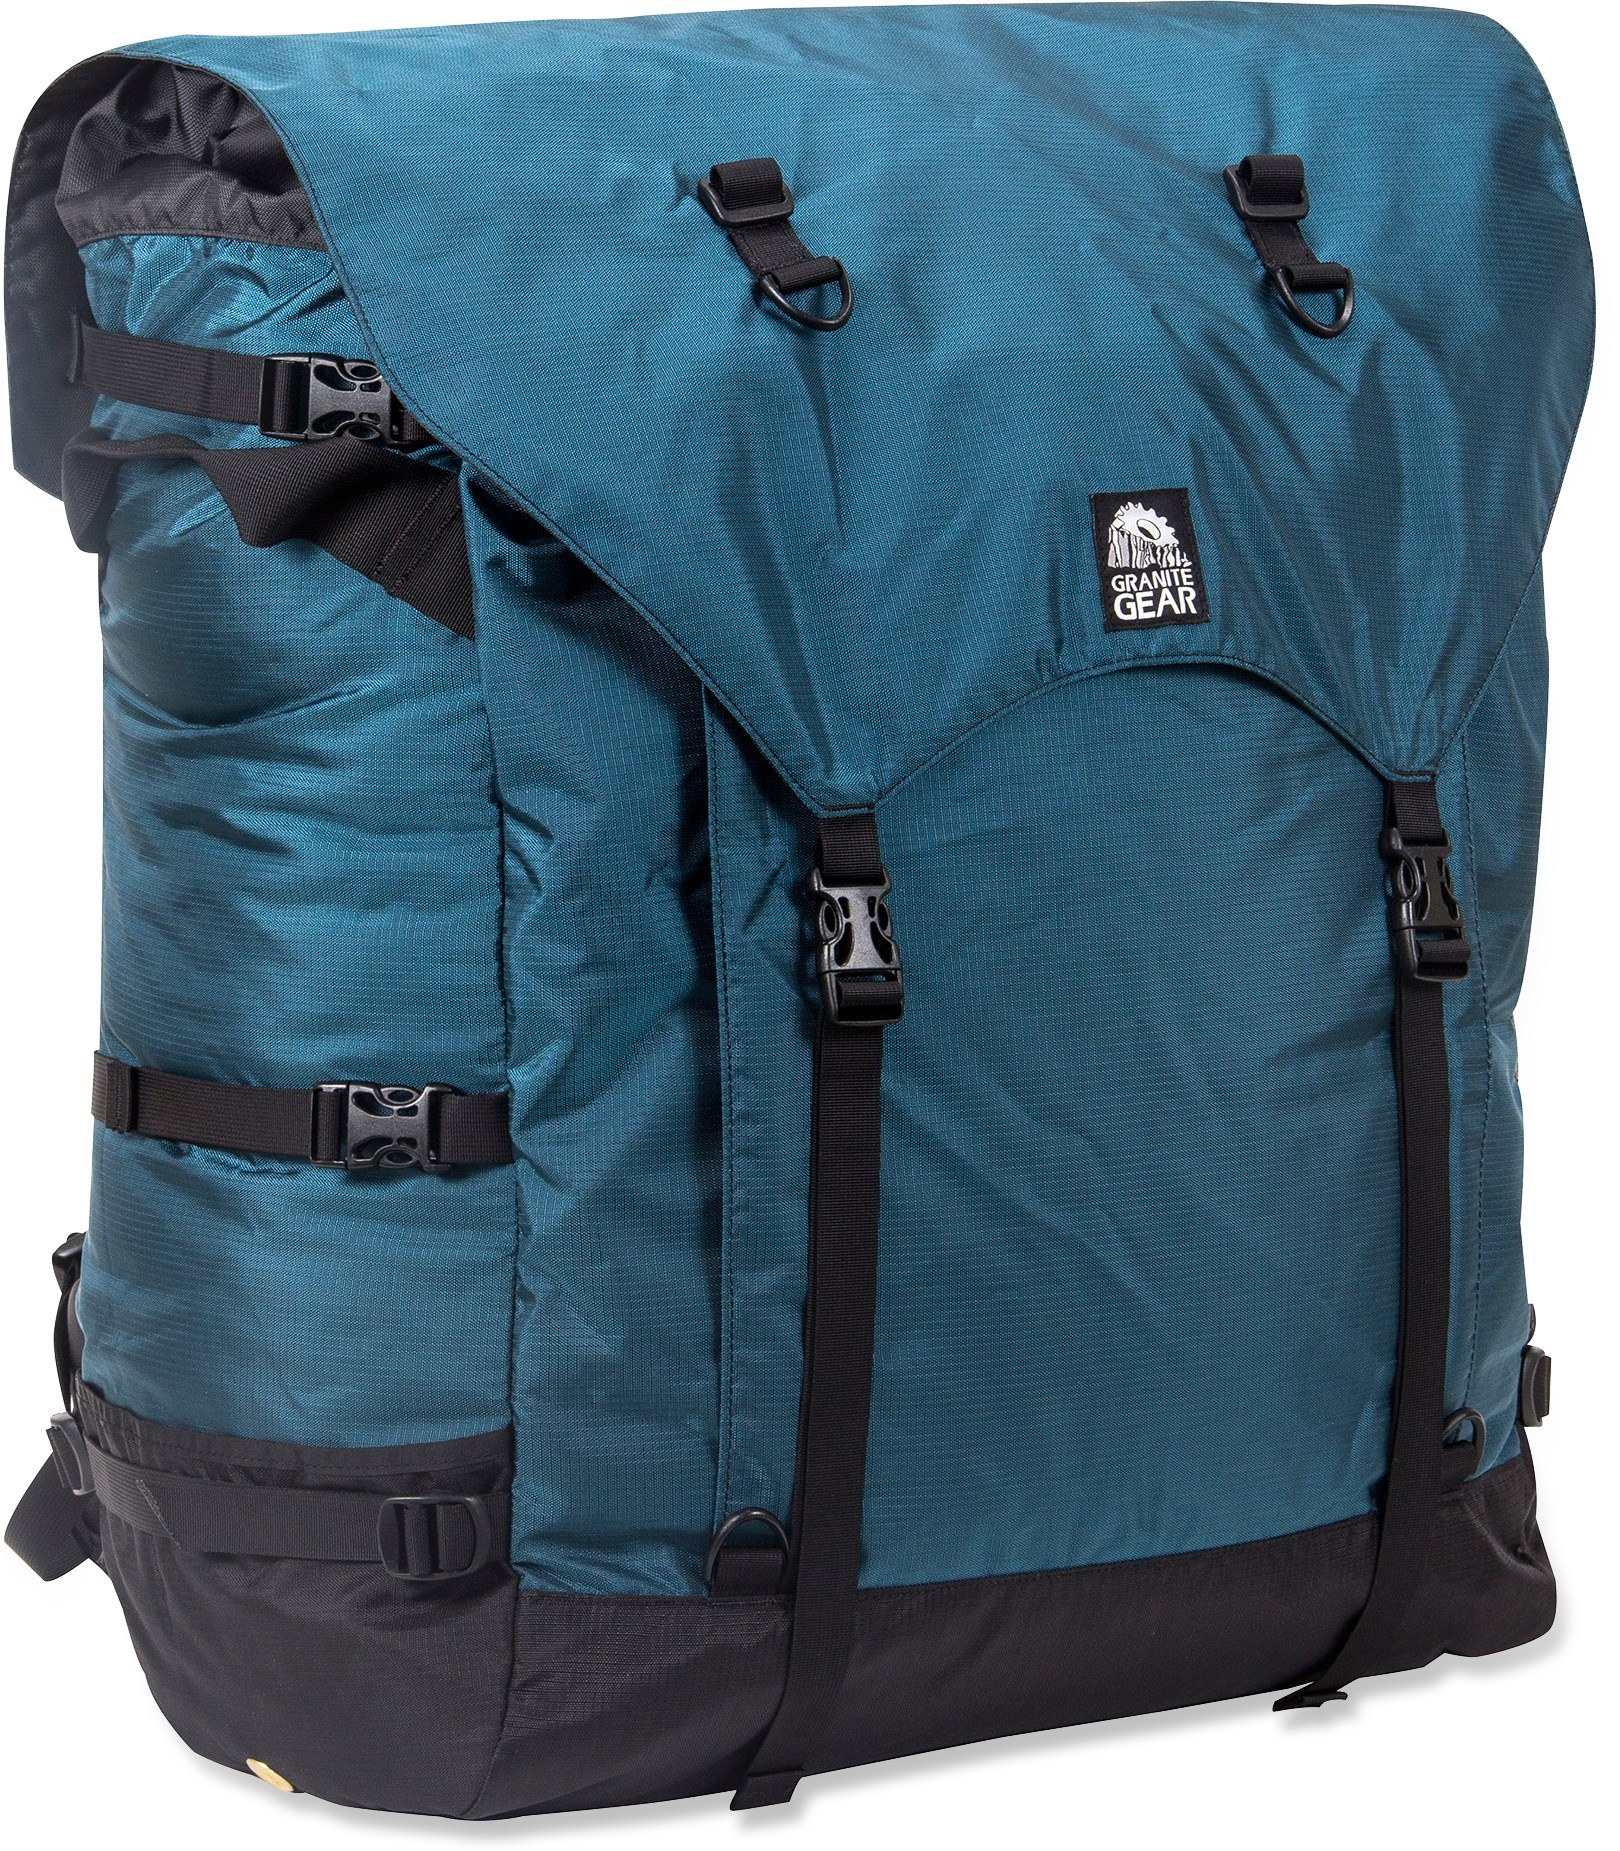 Granite Gear Superior One Portage Canoe Pack